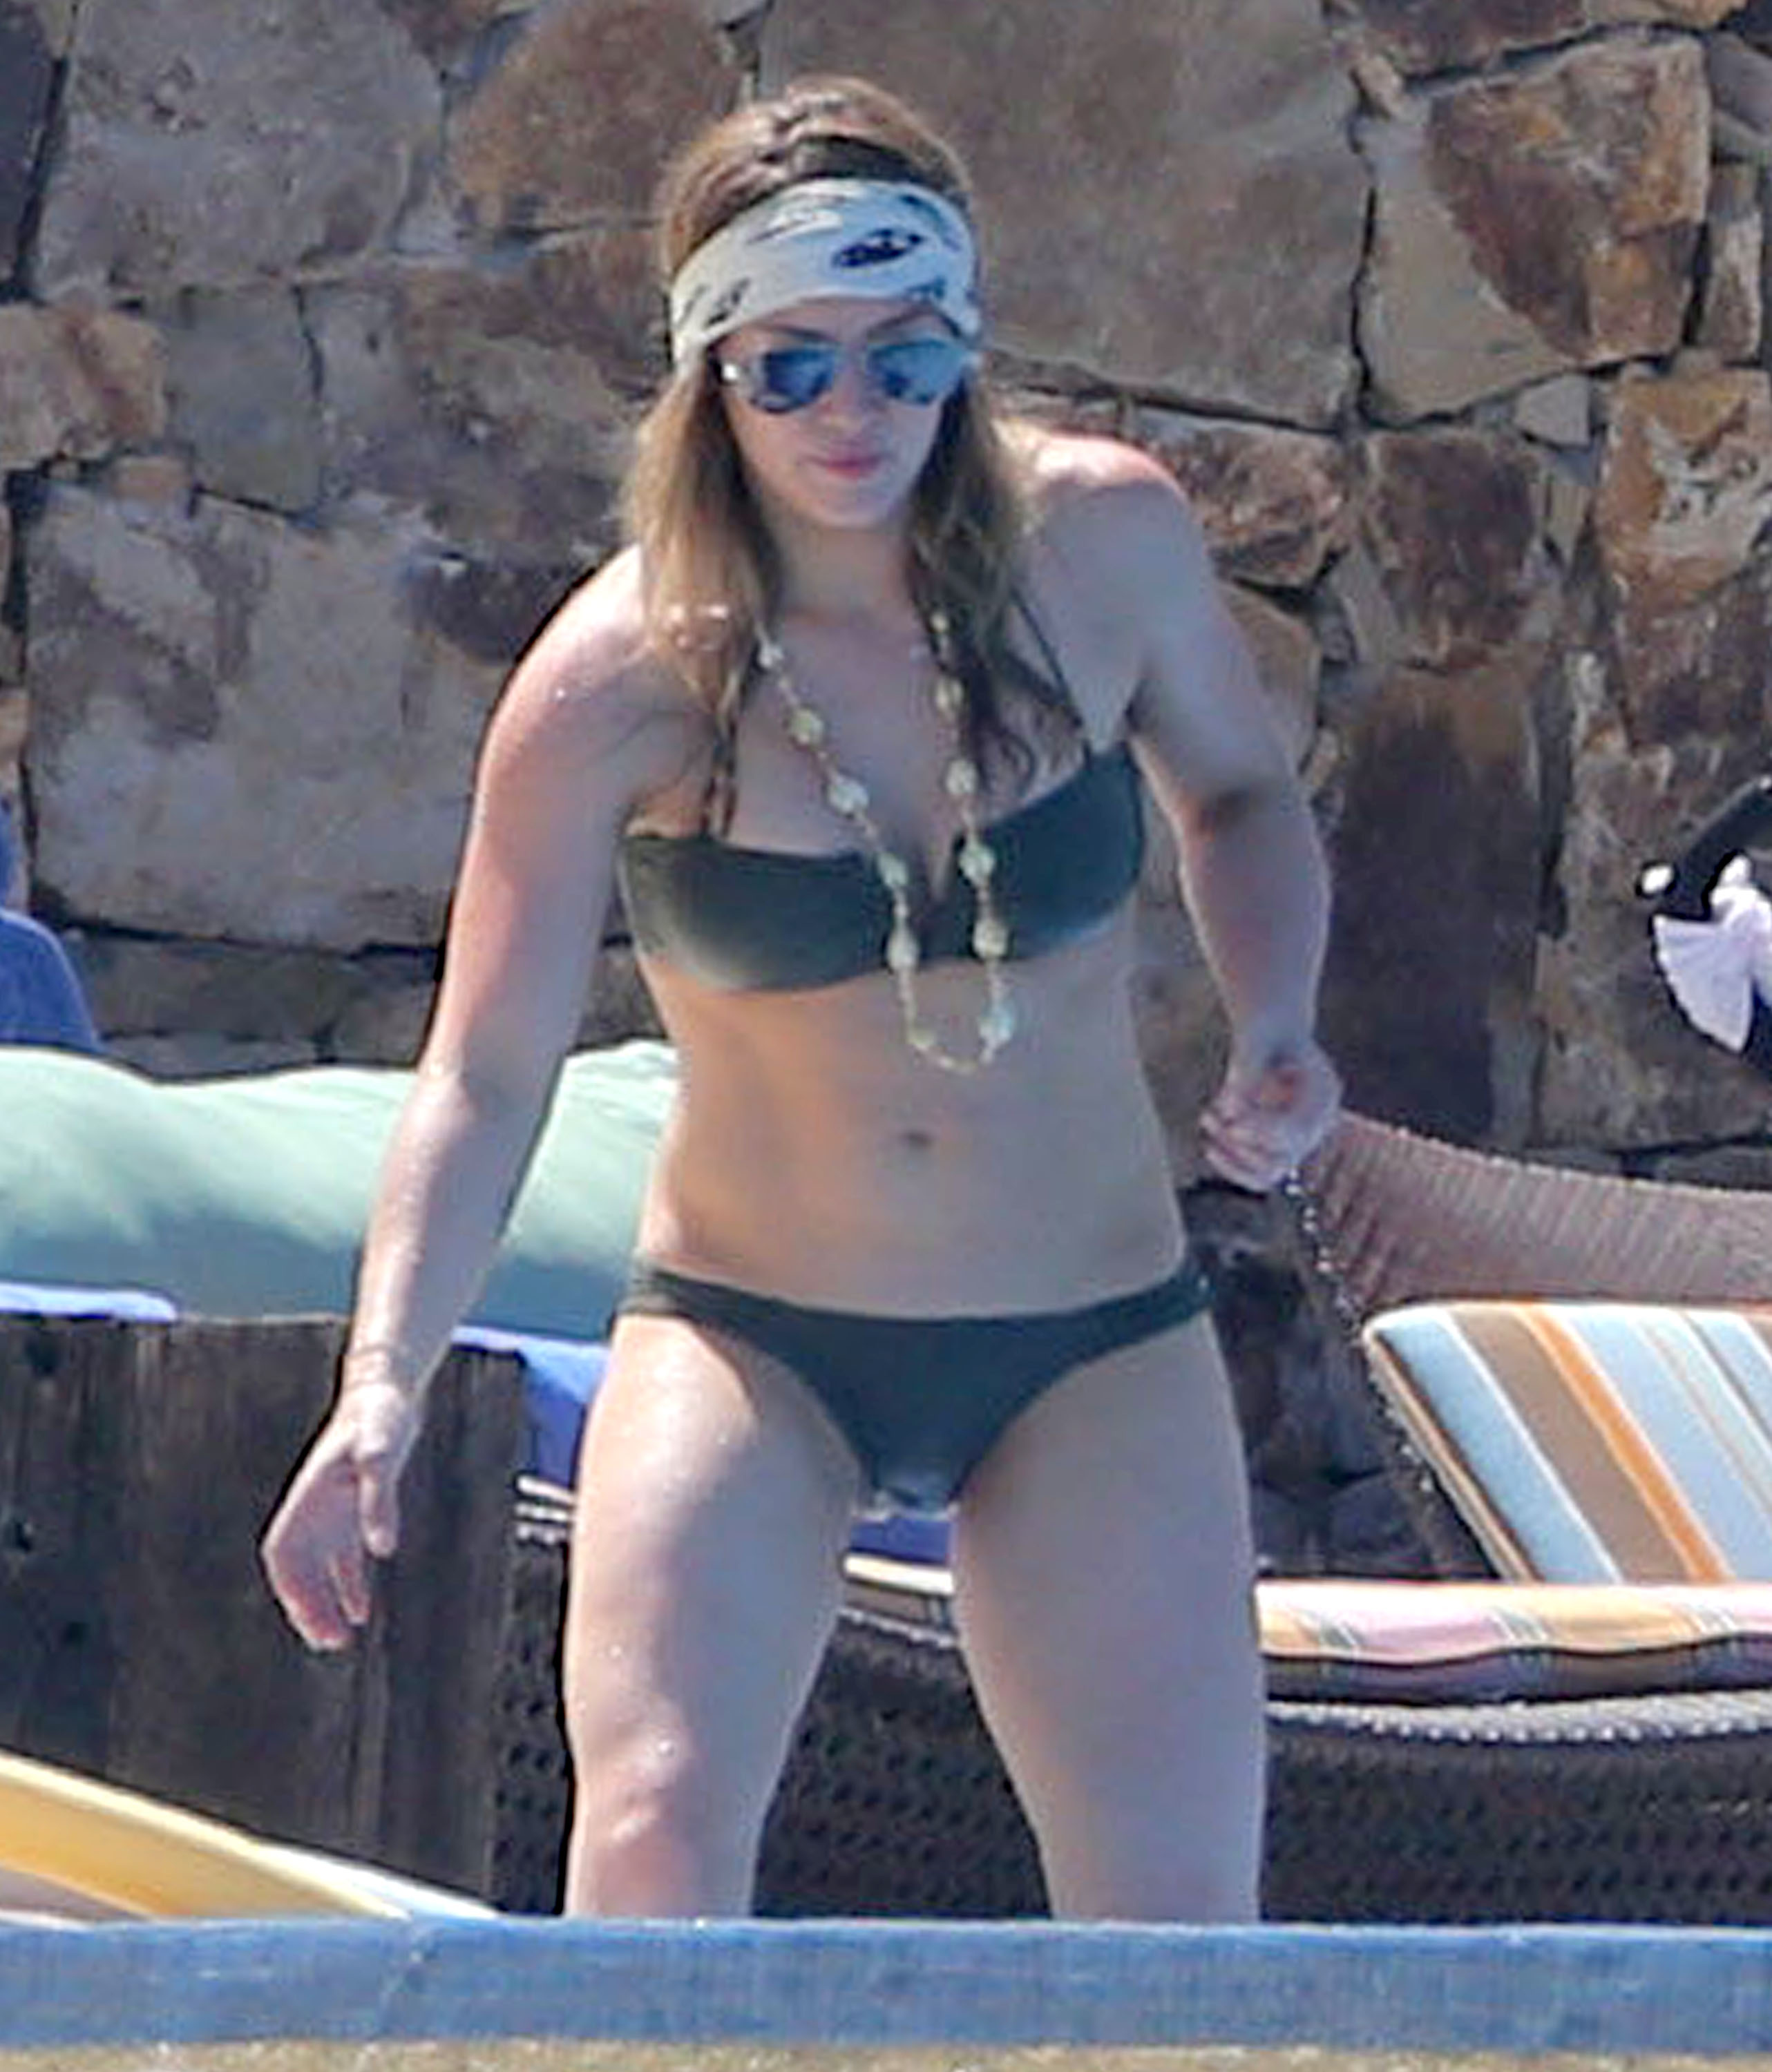 Hilary Duff channeled her inner Axl Rose in a skull head scarf and aviator sunglasses during a getaway to Cabo San Lucas in May 2013.